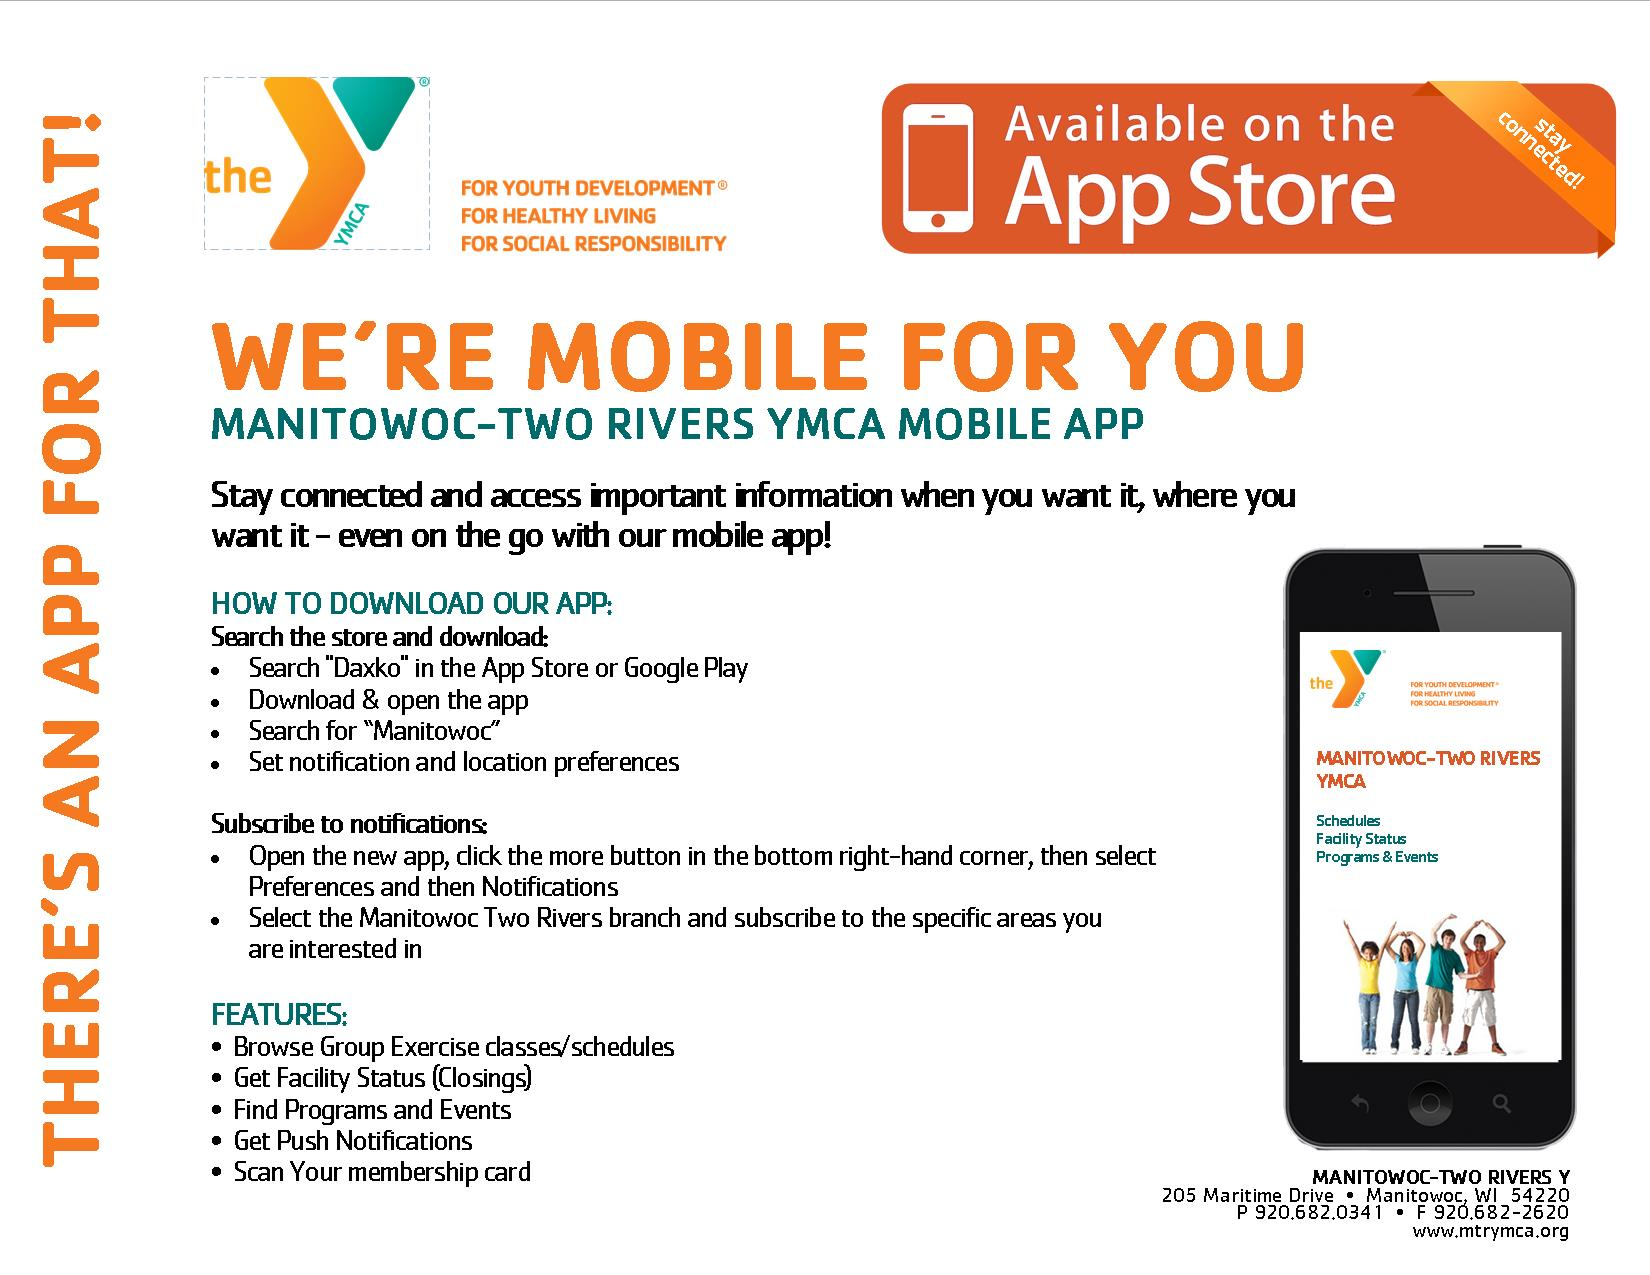 http://mtrymca.org/sites/mtrymca.org/assets/images/home/Mobile-App.jpg